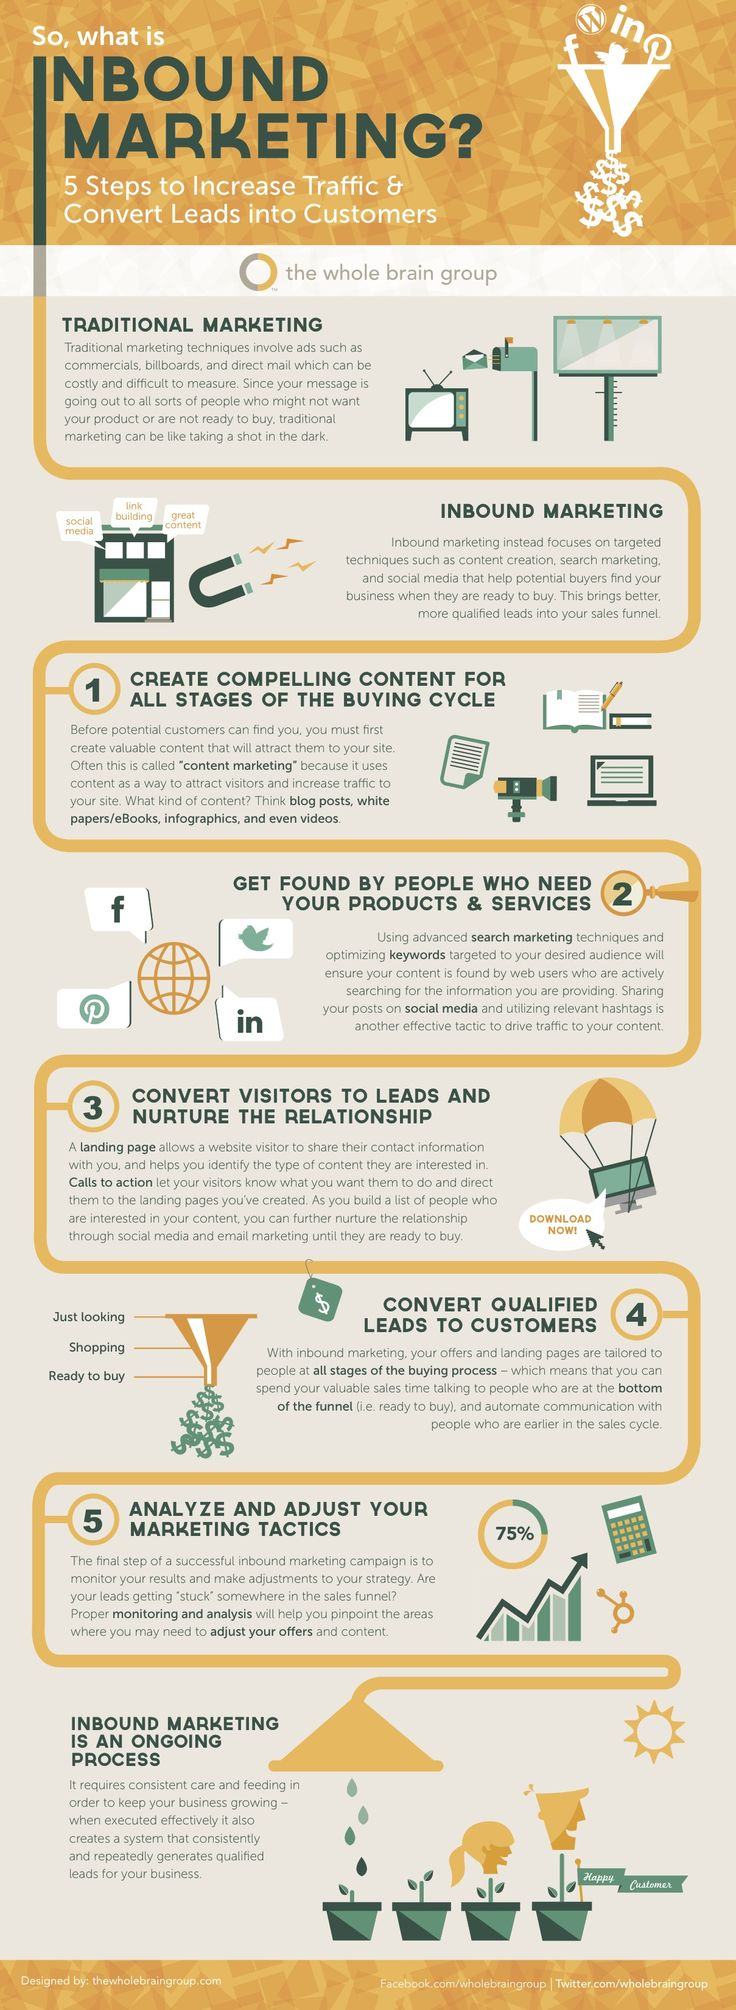 WBG_Infographic_What_Is_Inbound_Marketing.jpg